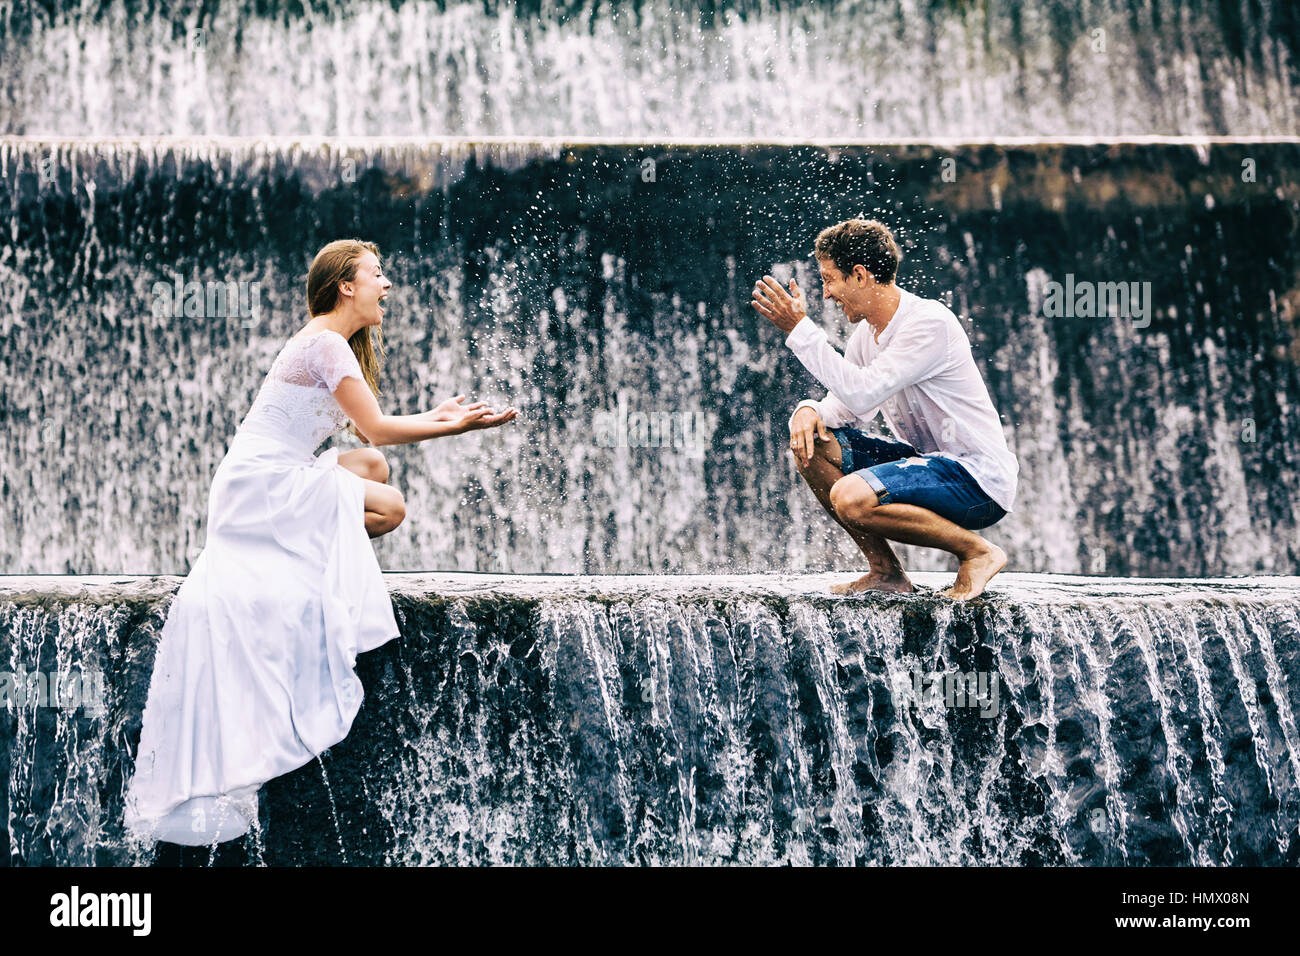 Happy family on honeymoon holidays - married loving couple splashing with fun under falling water in cascade waterfall - Stock Image